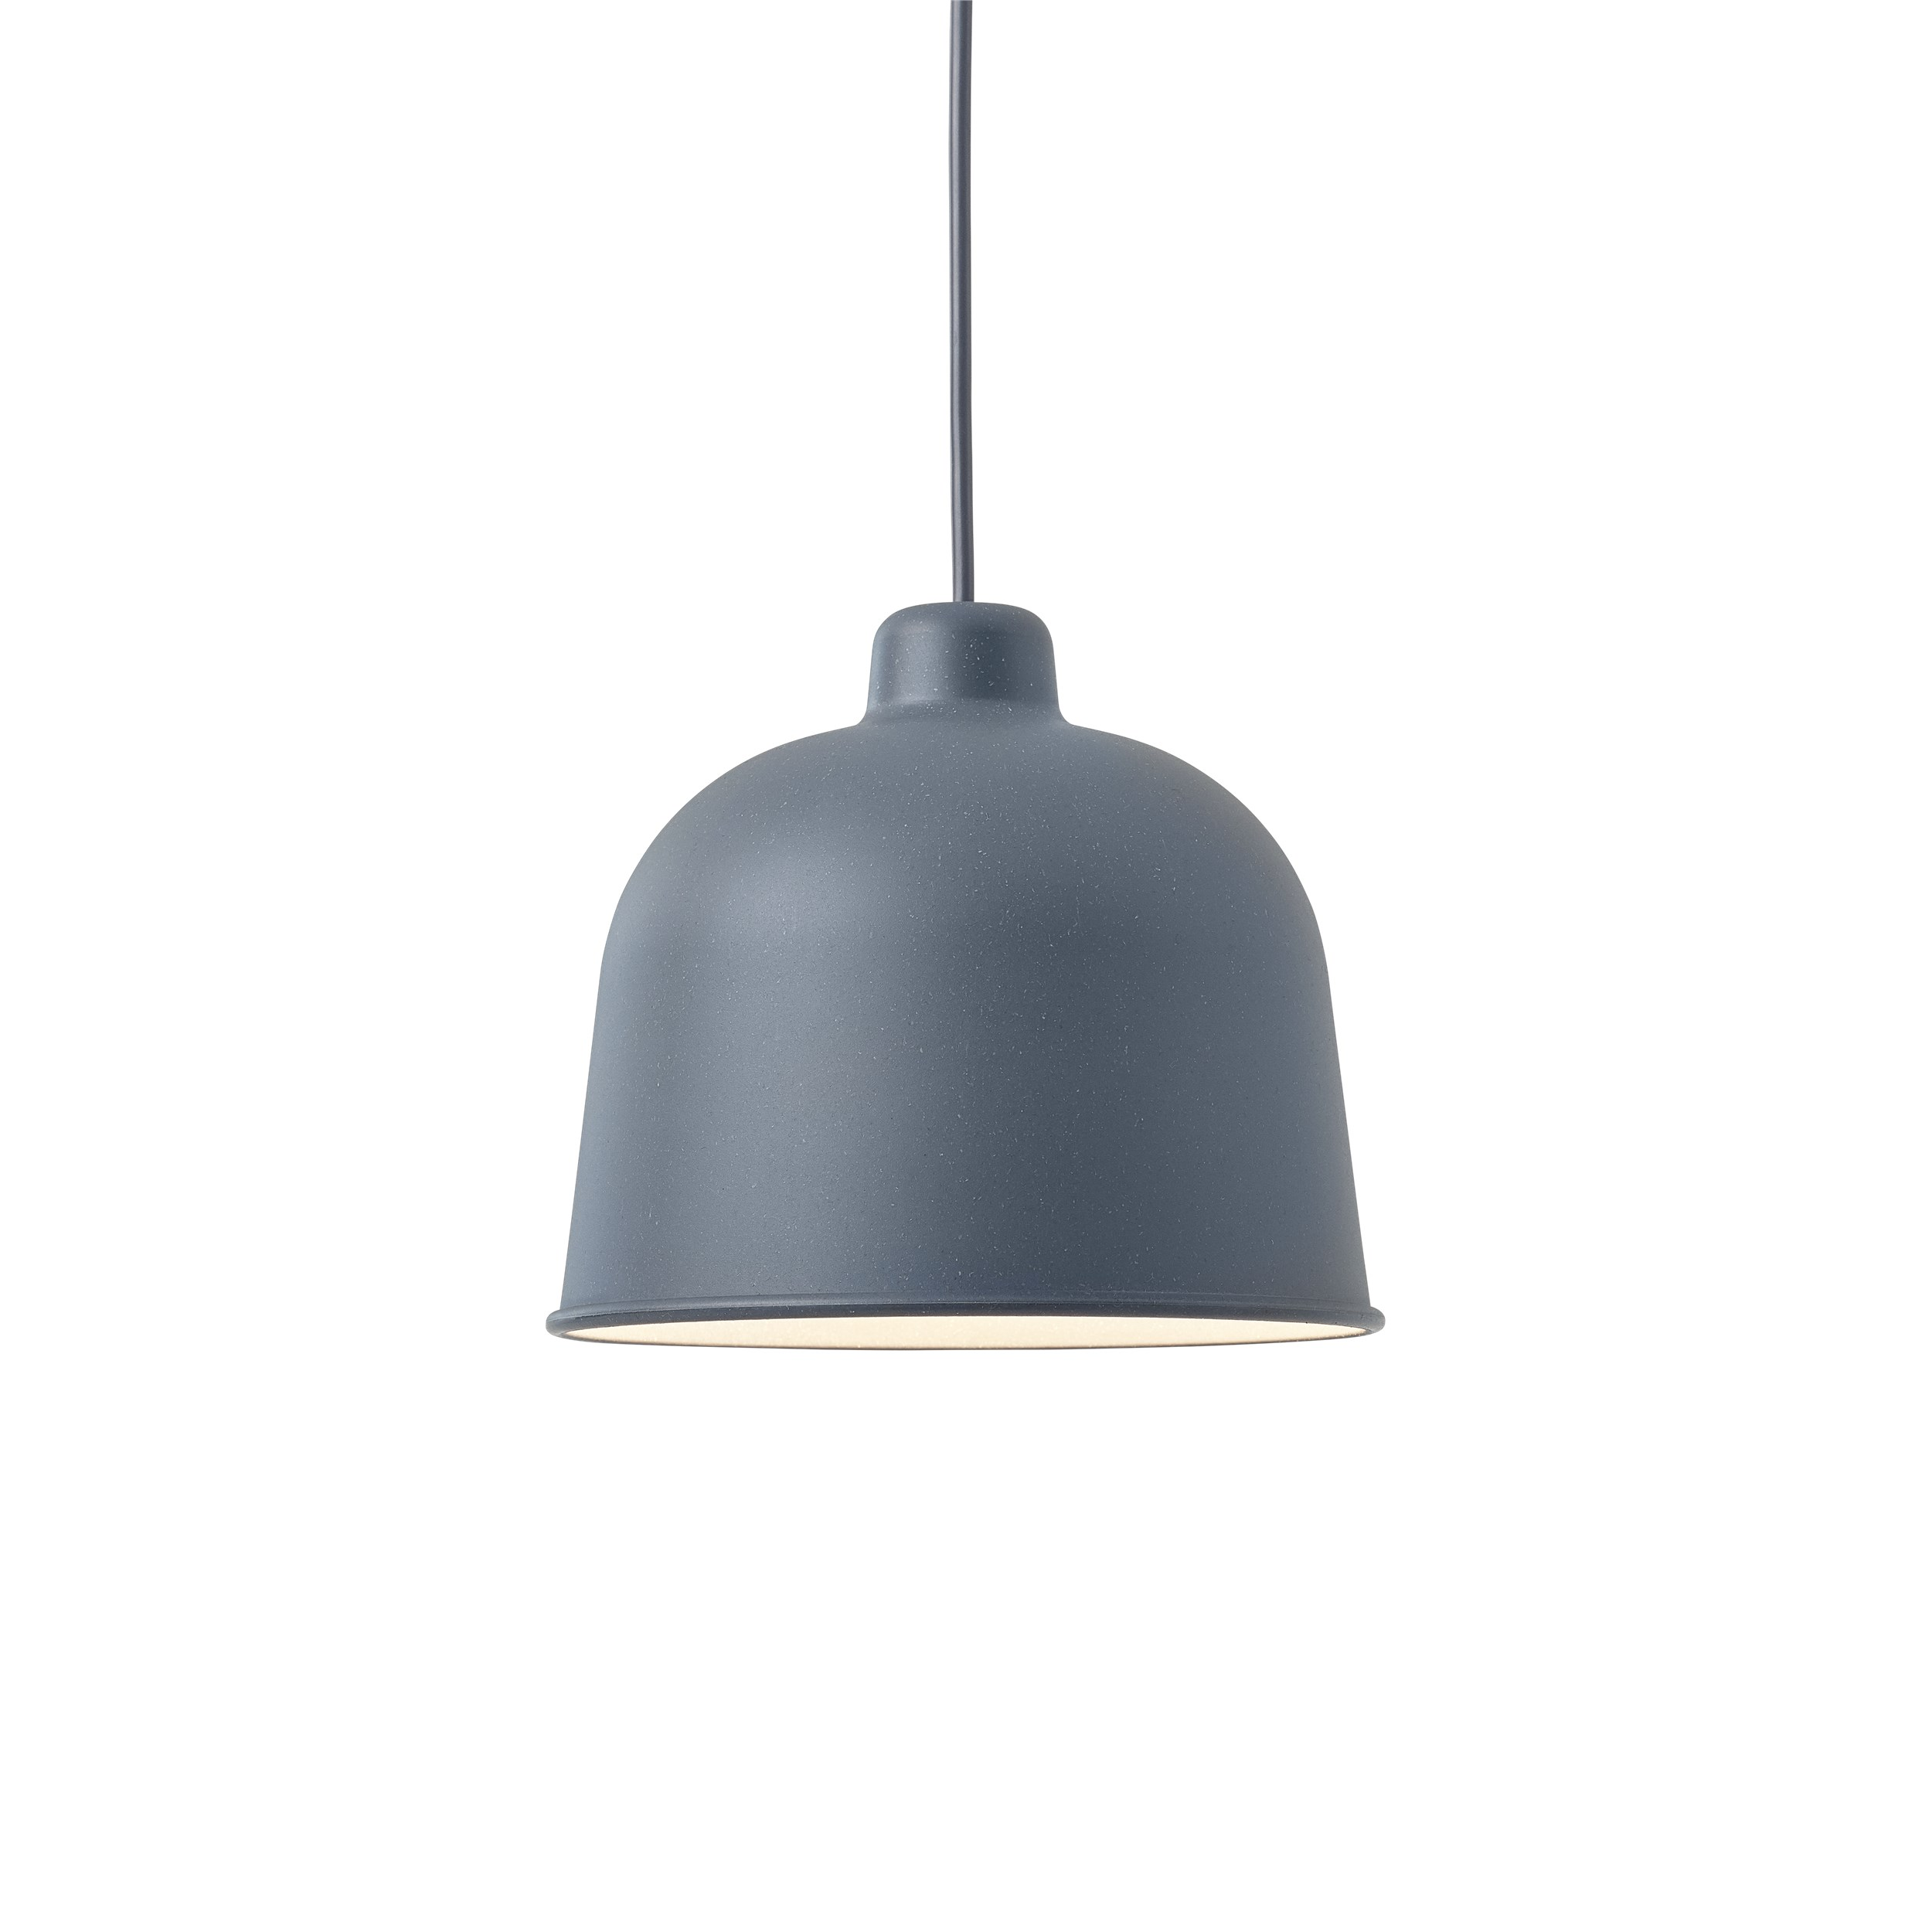 Grain lamp blue - grey